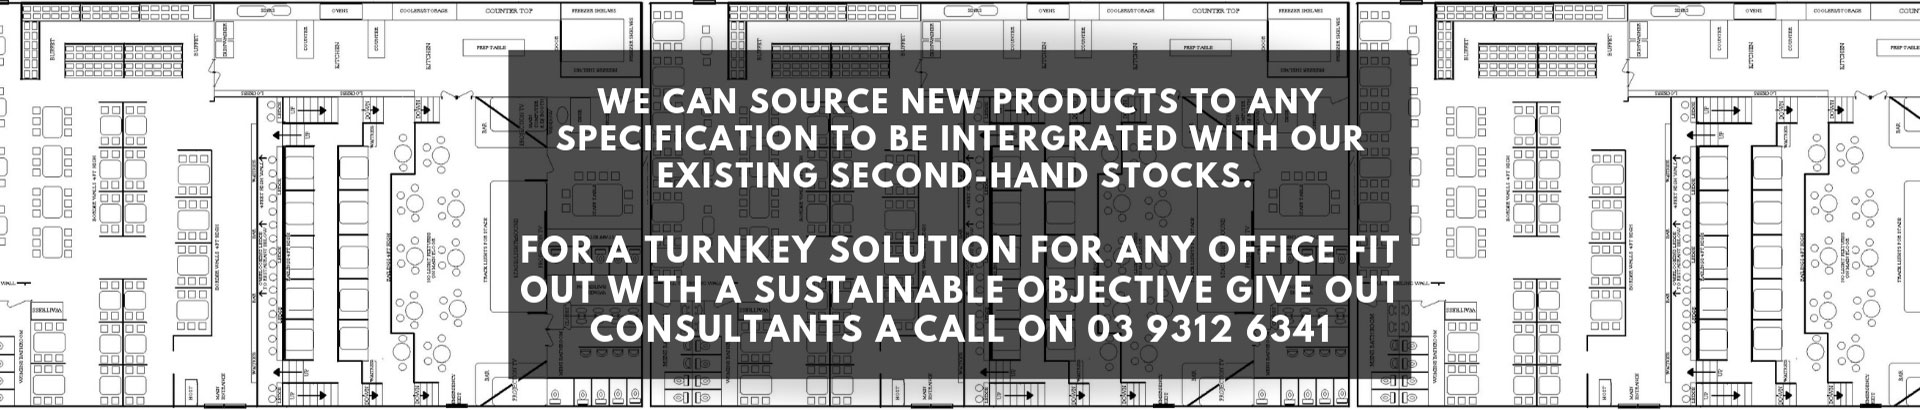 We can source new products to any specification to be integrated with our existing second-hand stocks